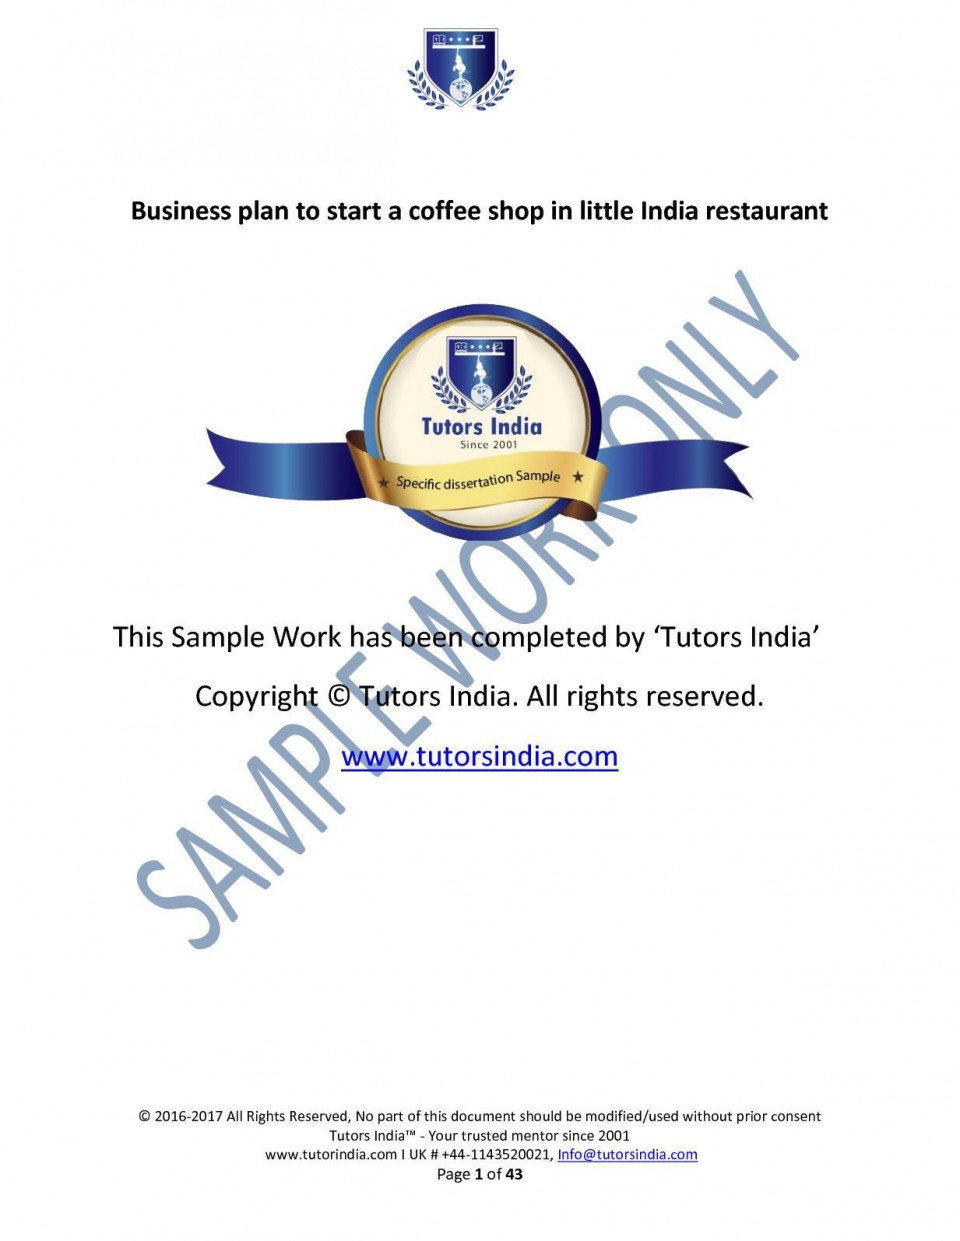 008 Archaicawful Restaurant Busines Plan Sample Uk High Def  Template Free960